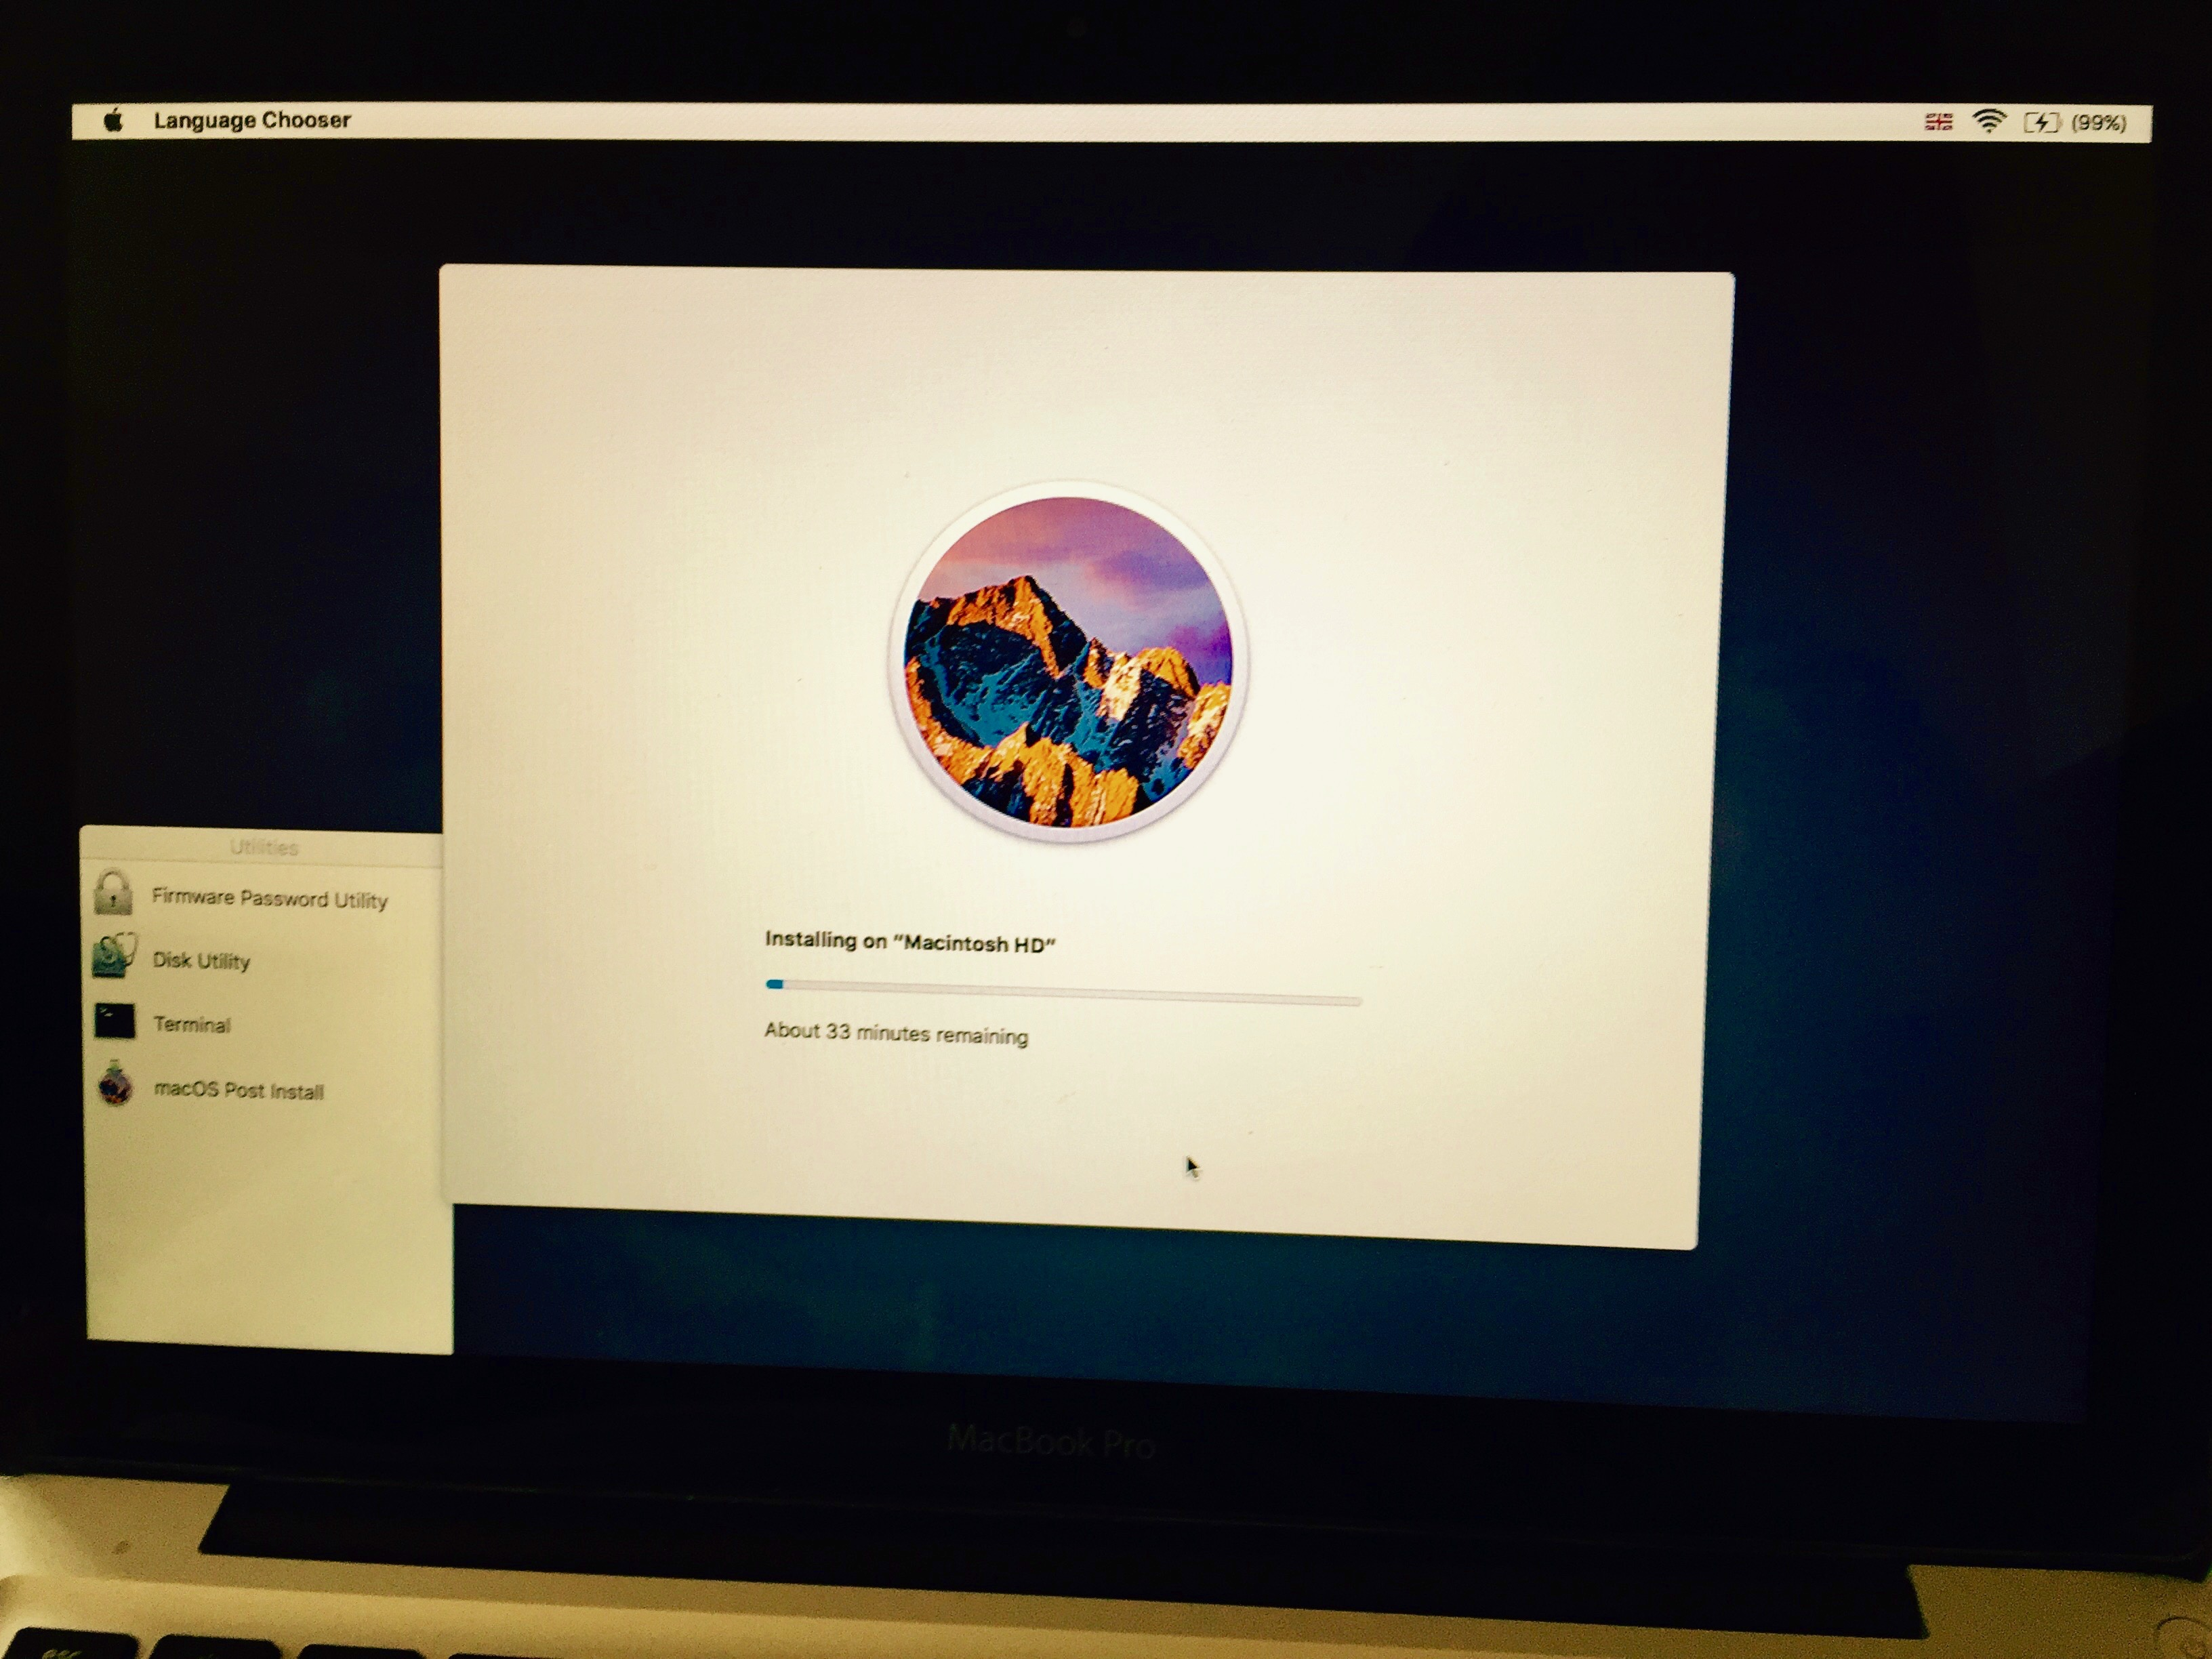 How to install macOS 10 12 Sierra on unsupported Mac hardware